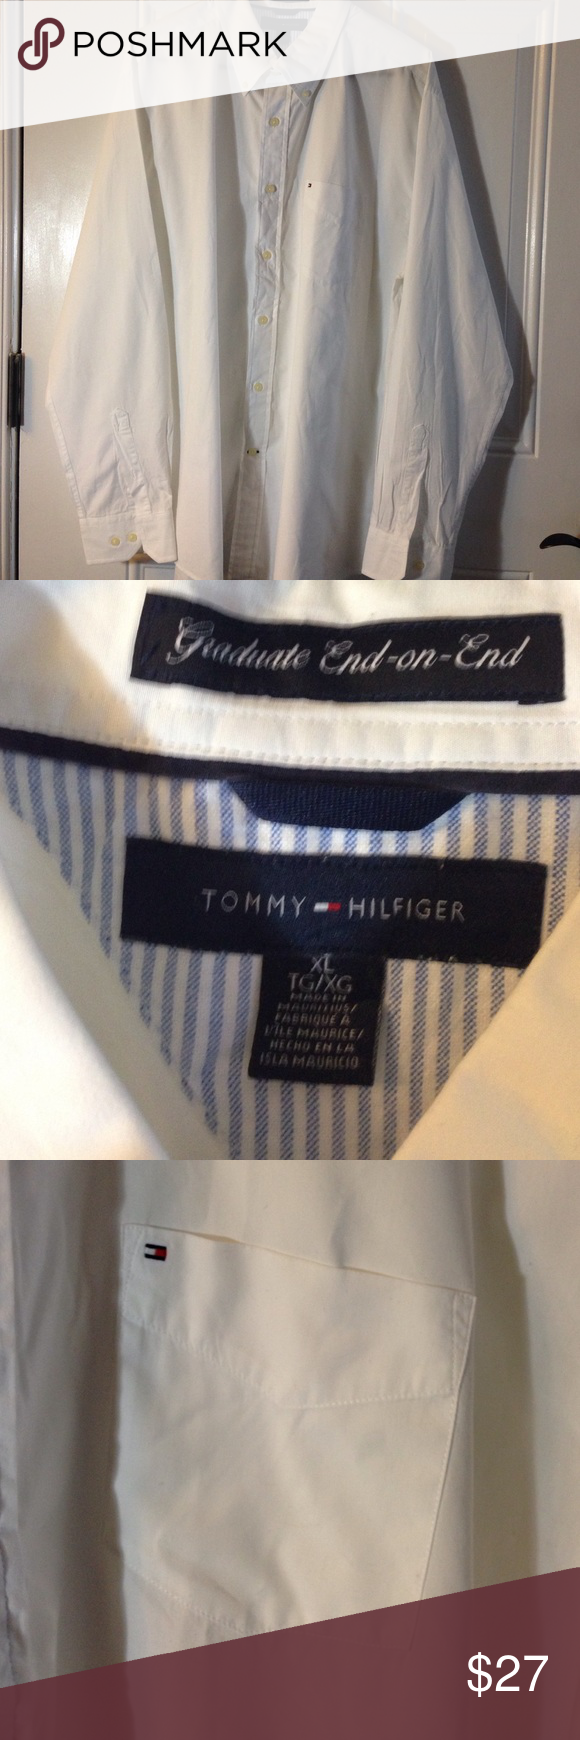 Men's Tommy Hilfiger Long Sleeve Like New Condition Tommy Hilfiger Shirts Tees - Long Sleeve